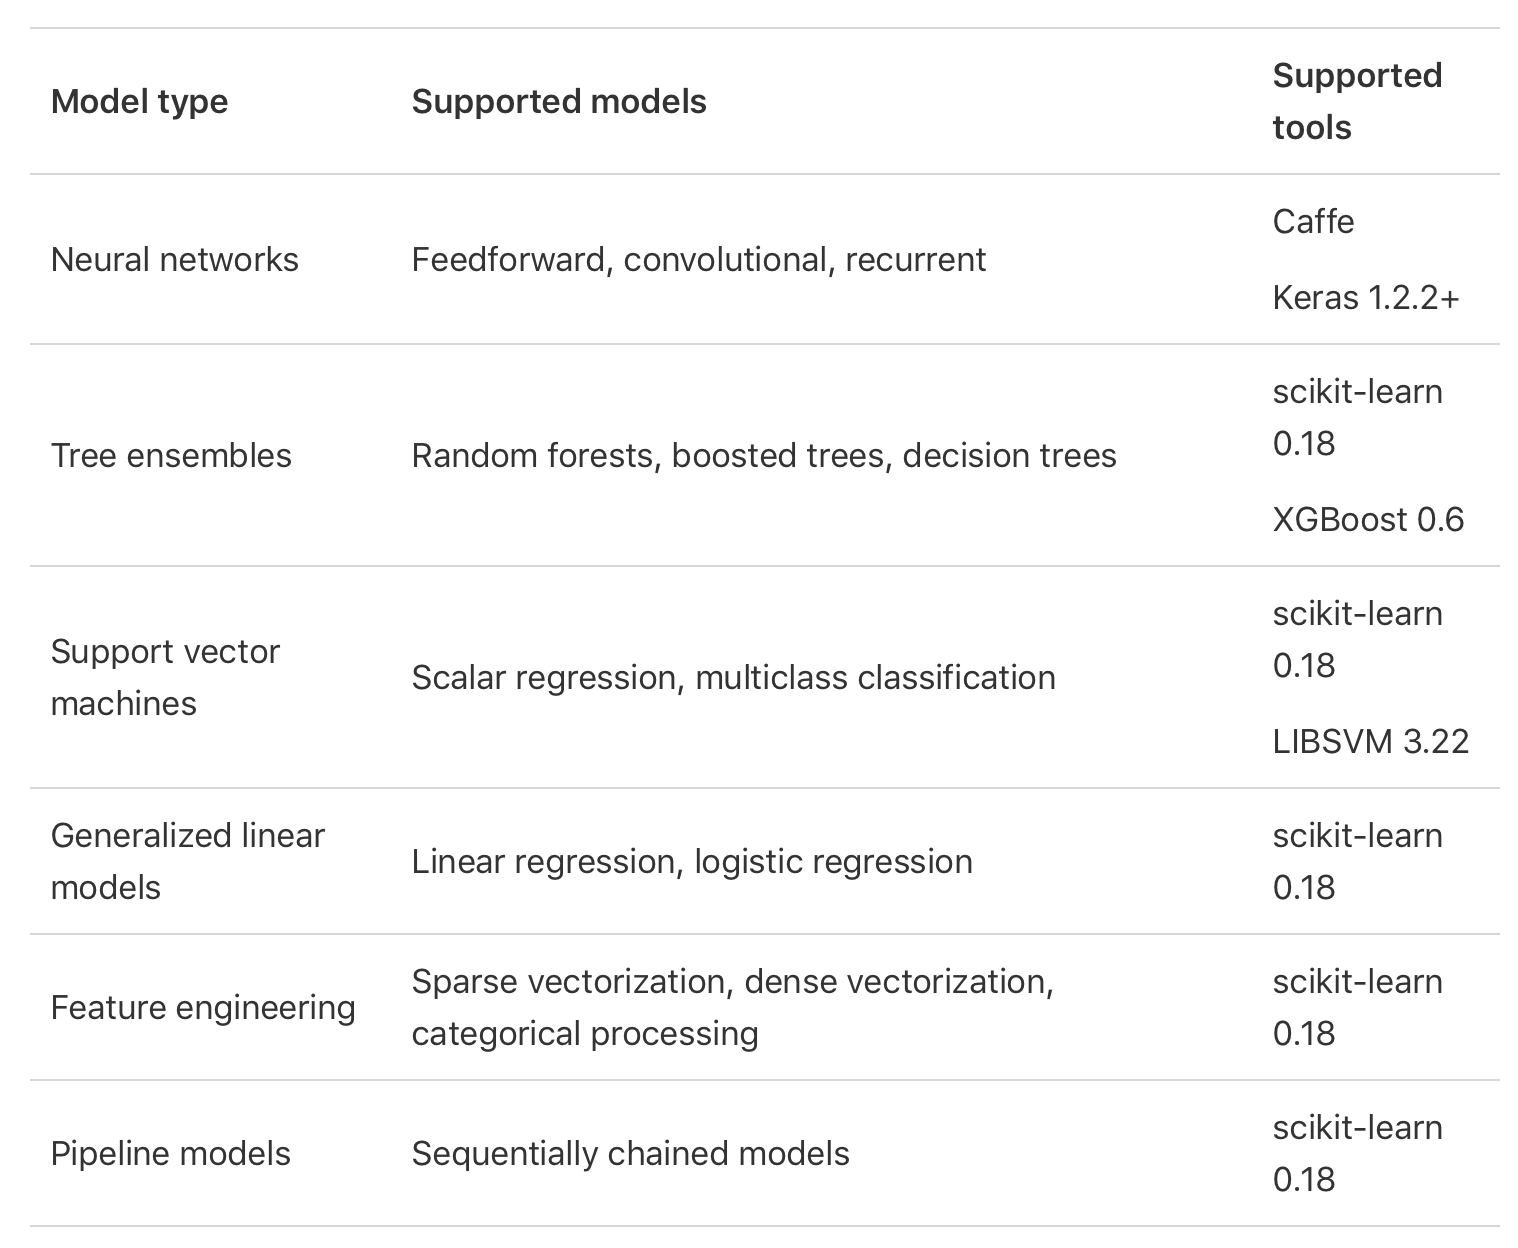 Models Supported by Core ML Tools